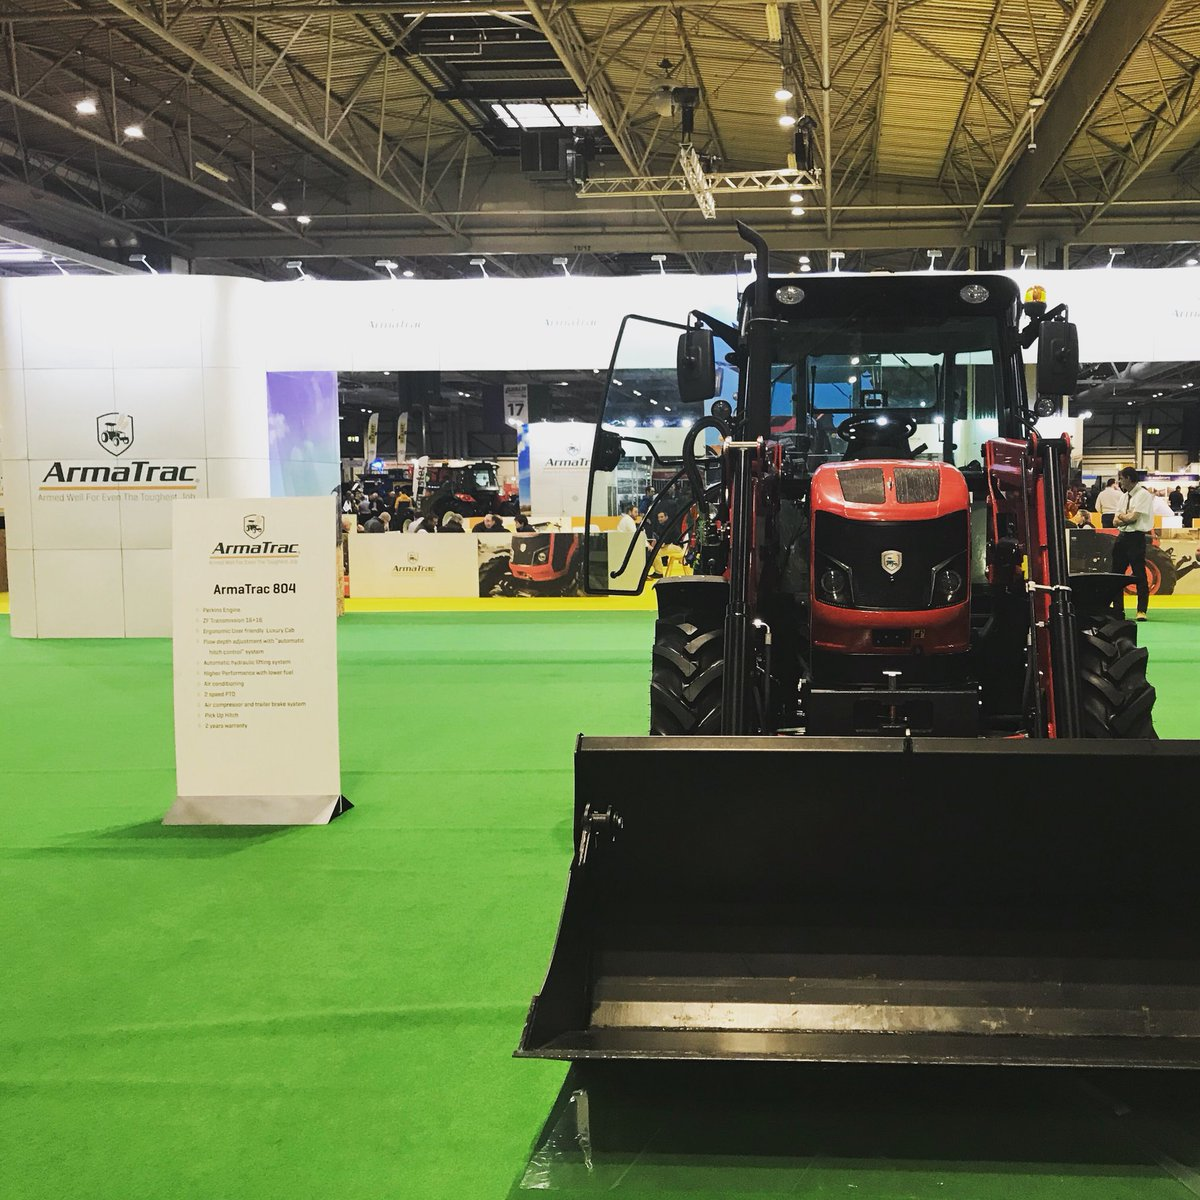 Great stand by @ArmaTrac from today at #LAMMA19. We think the show was superb!